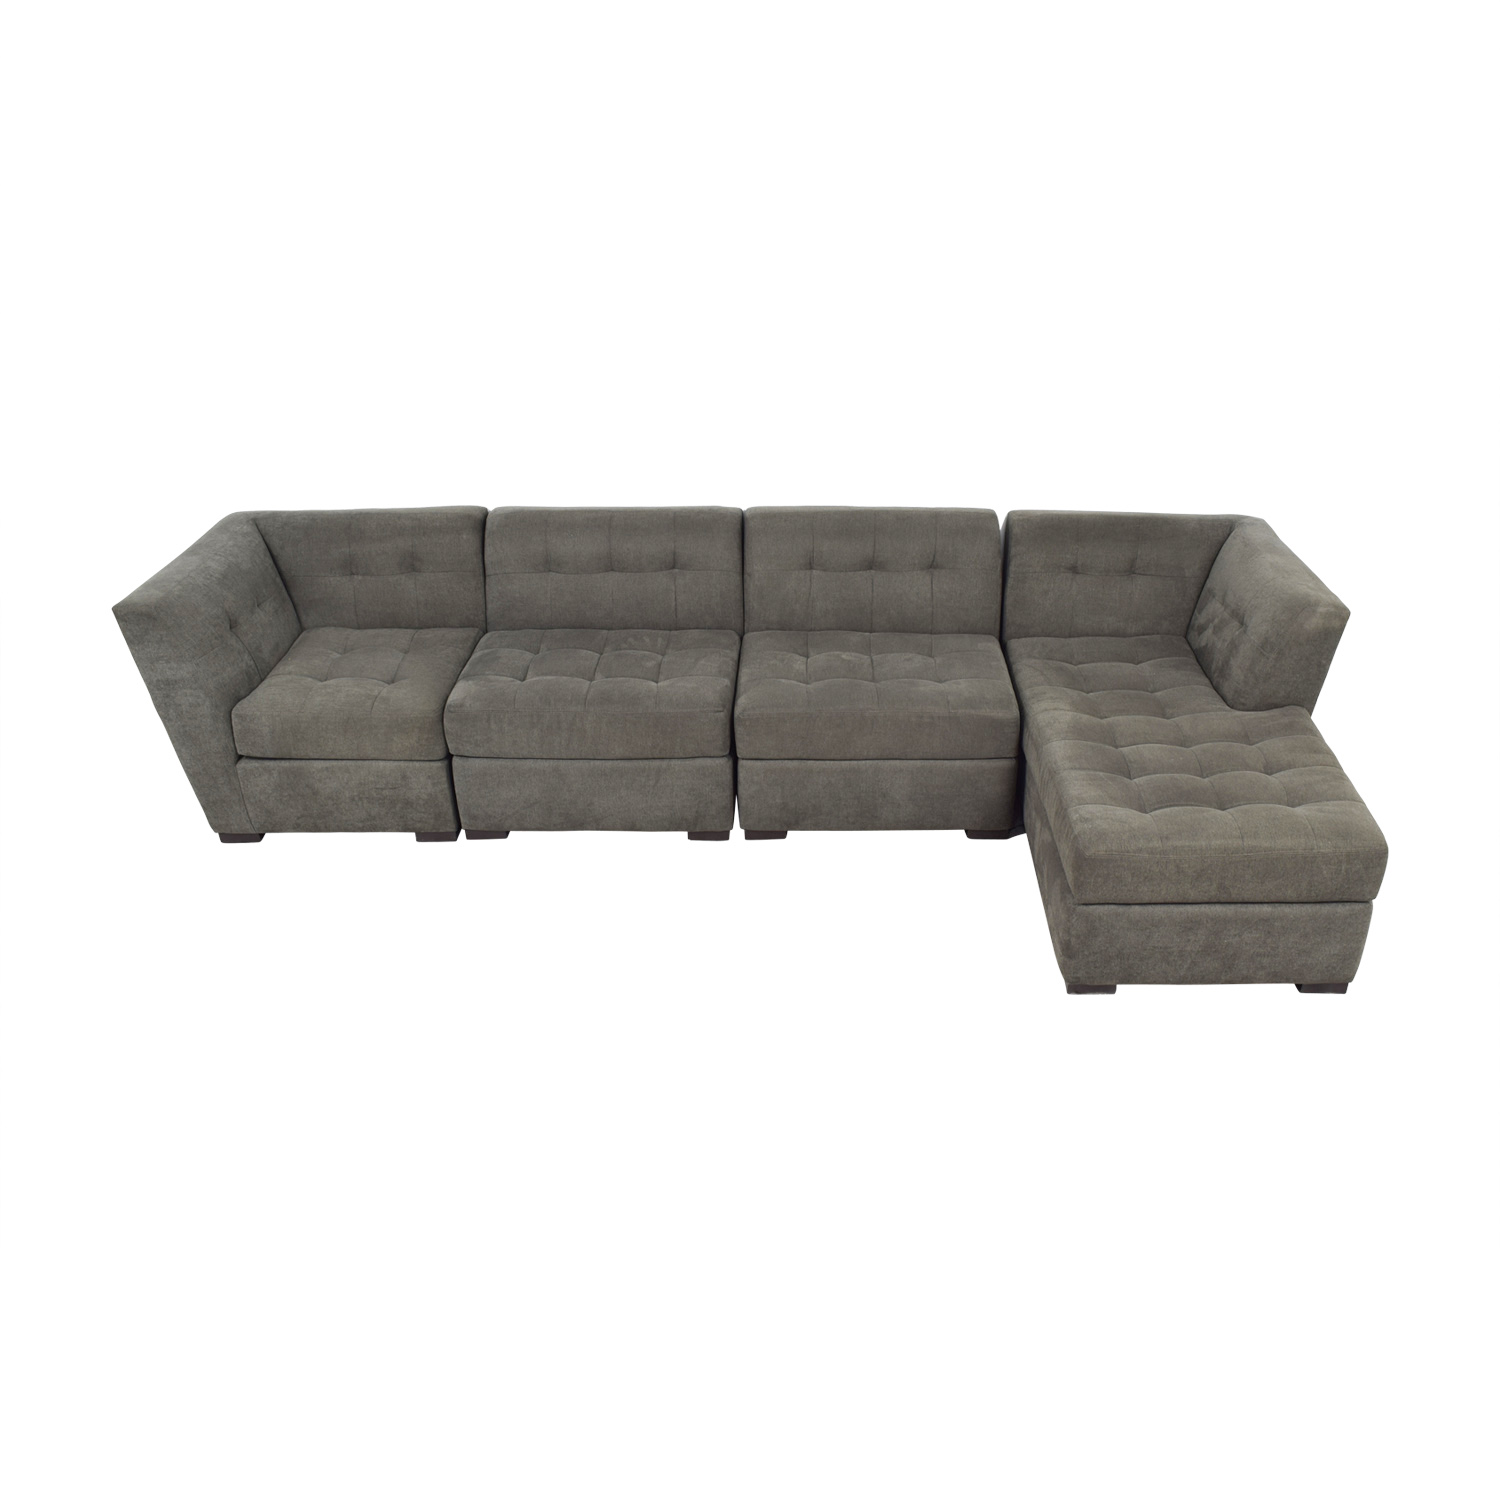 Macy's Macy's Grey Tufted Four Piece Chaise Sectional price